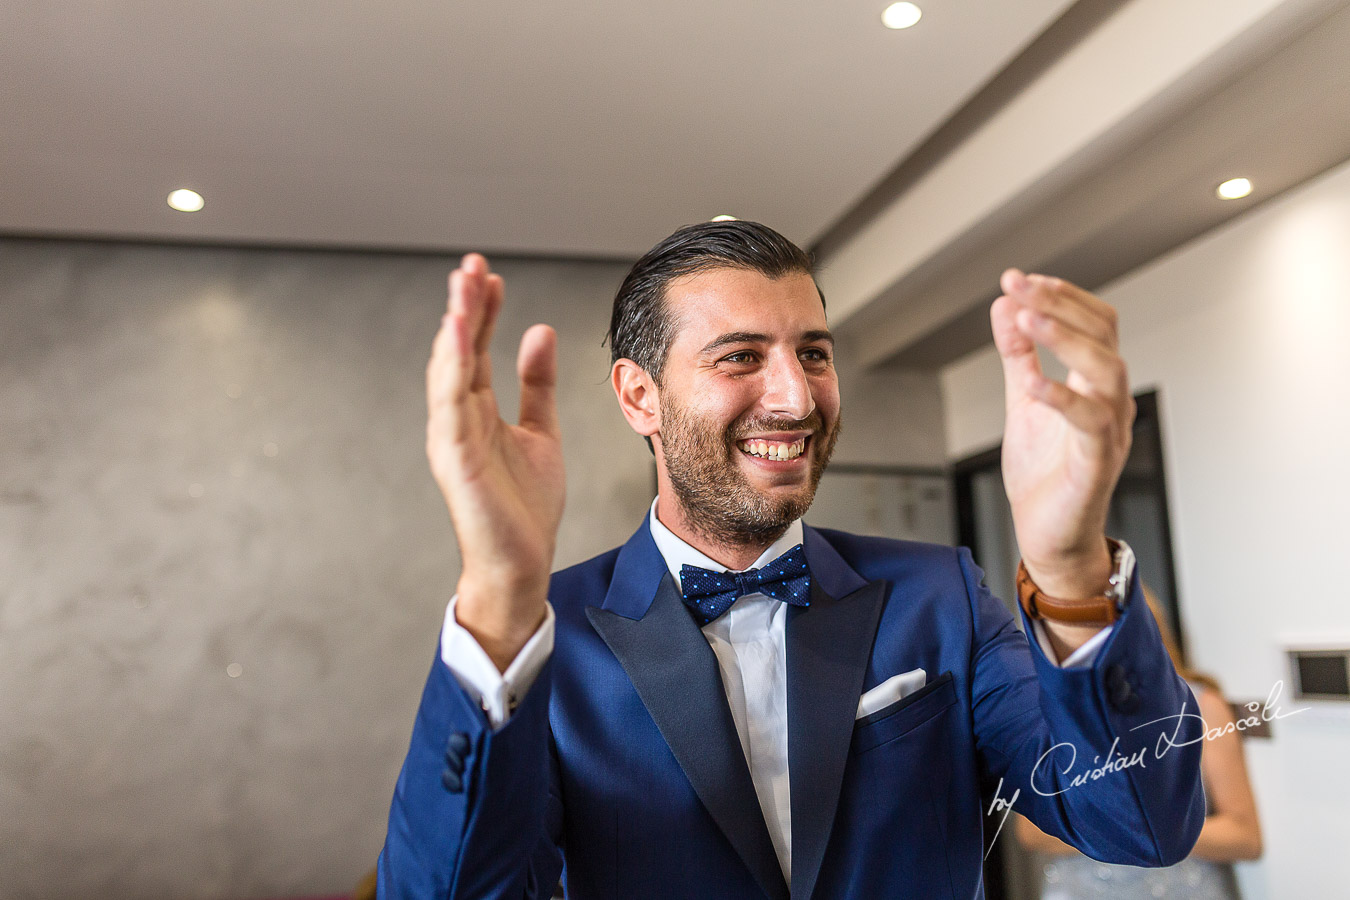 Traditional Zomanta moments from the groom's getting ready captured at an elegant and romantic wedding at Elias Beach Hotel by Cristian Dascalu.